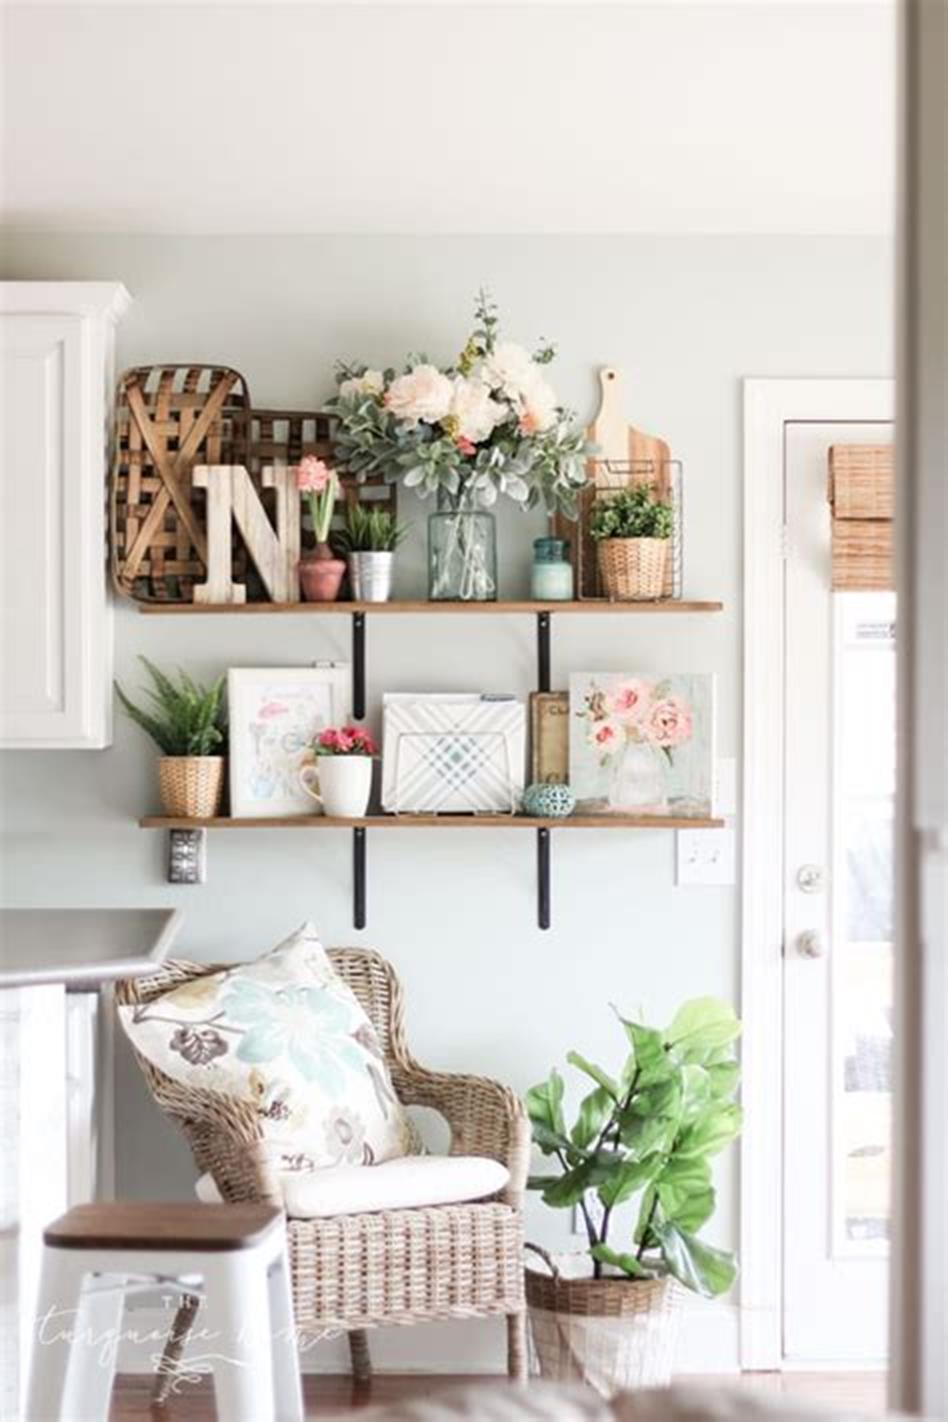 37 Beautiful Farmhouse Spring Decorating Ideas On a Budget for 2019 51